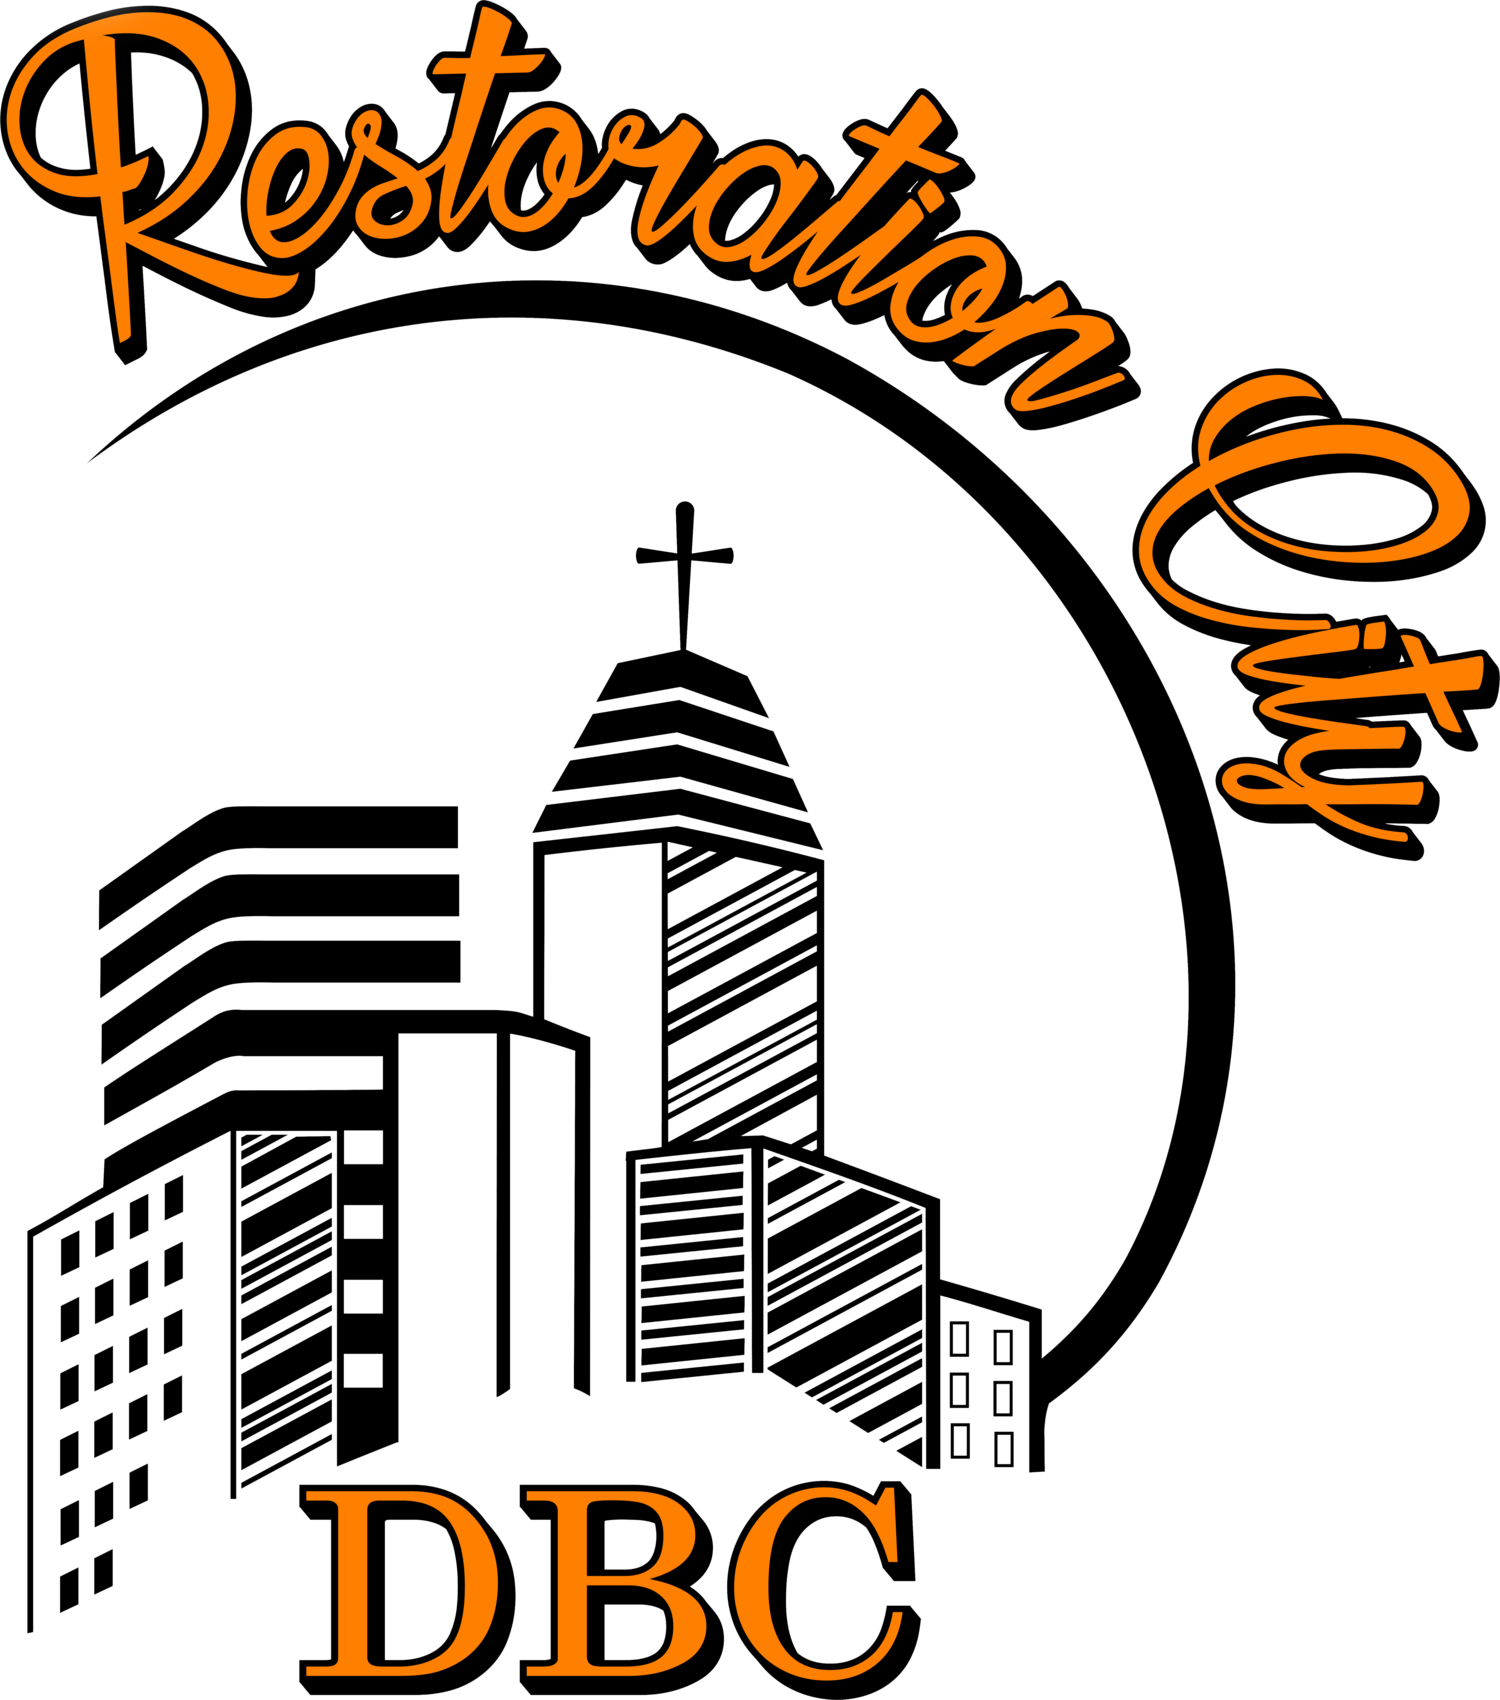 Restoration City at DBC